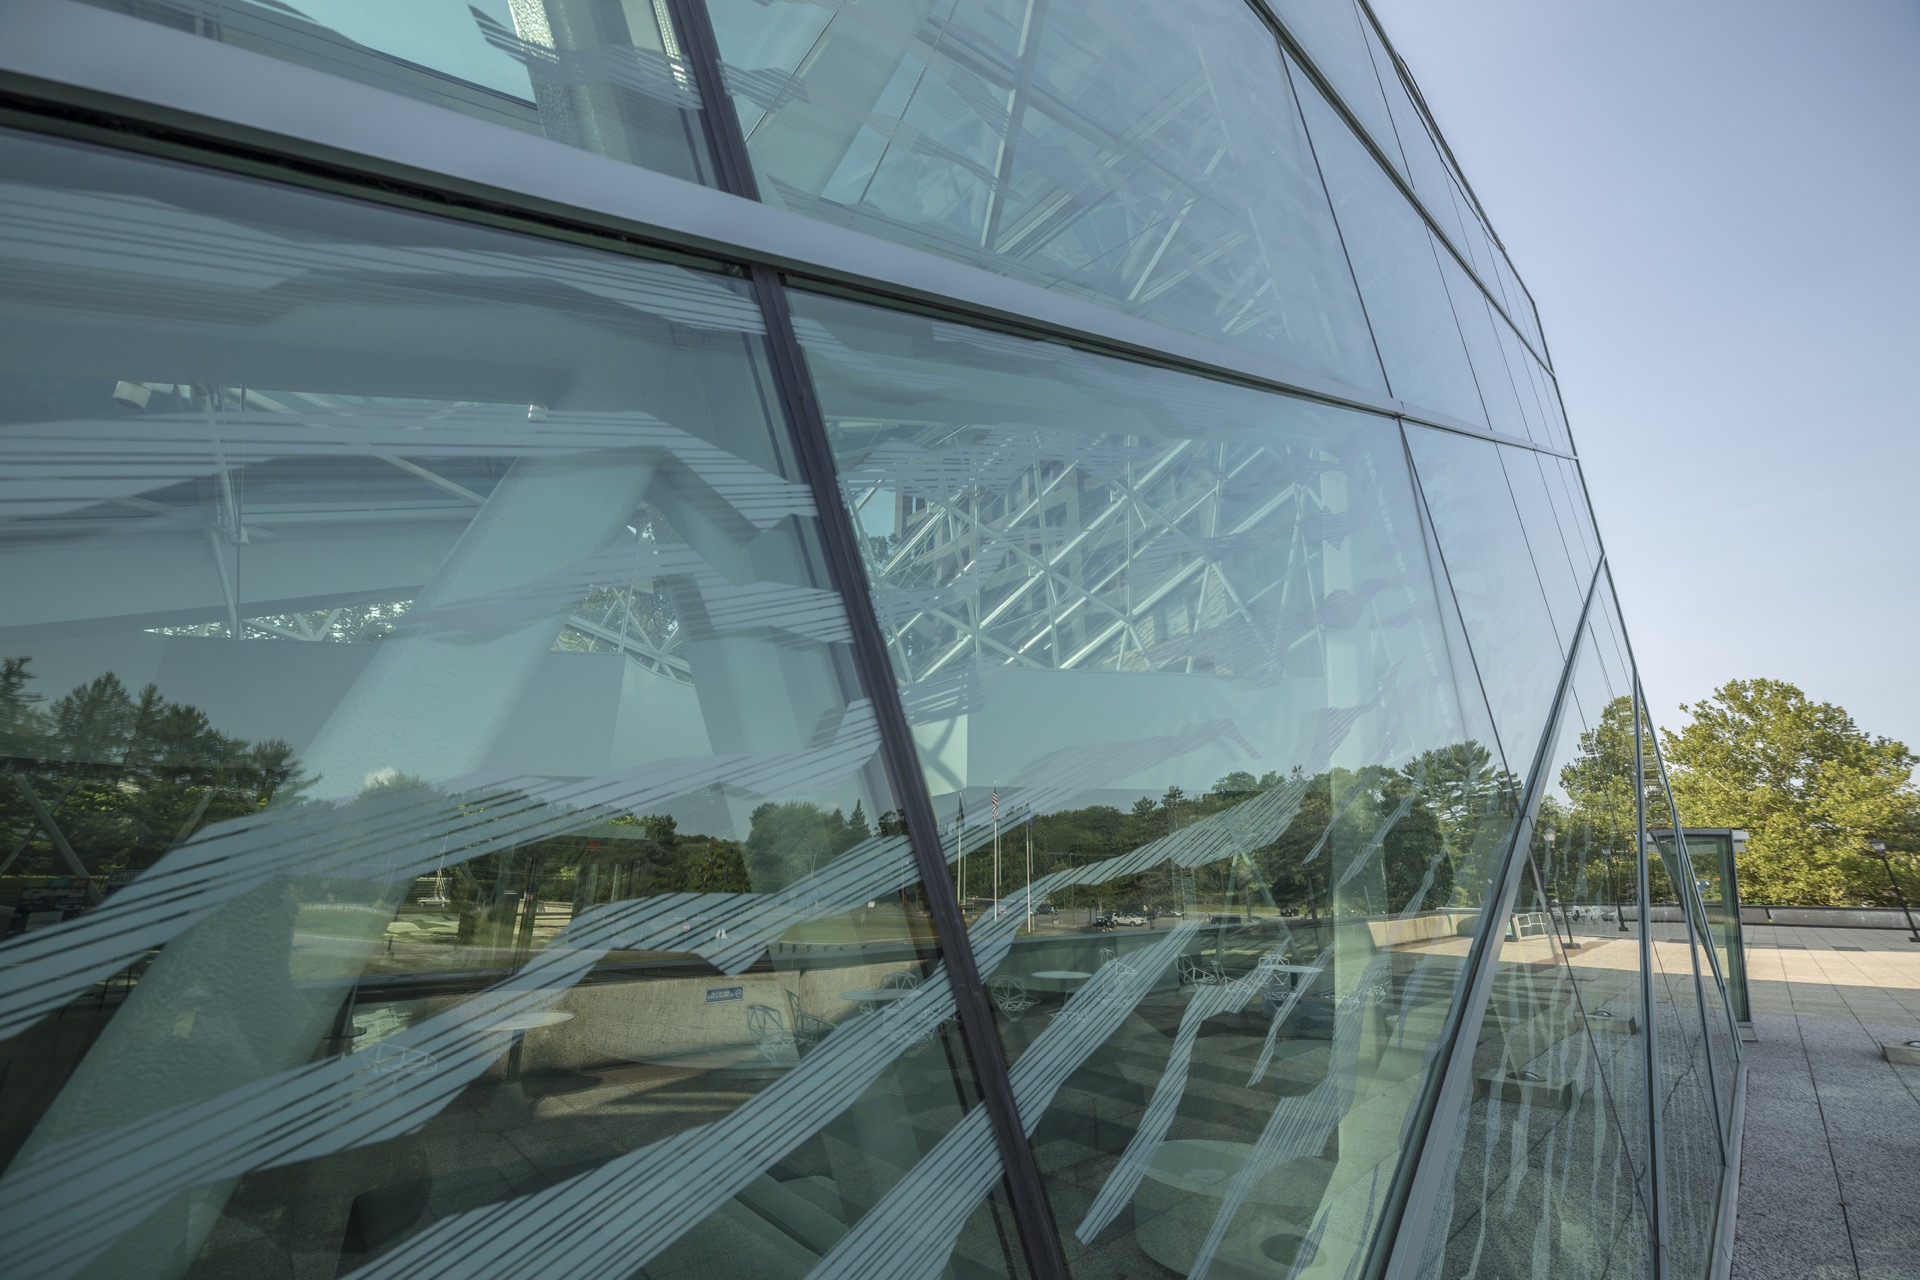 Detail of the exterior glass facade of SUNY New Paltz